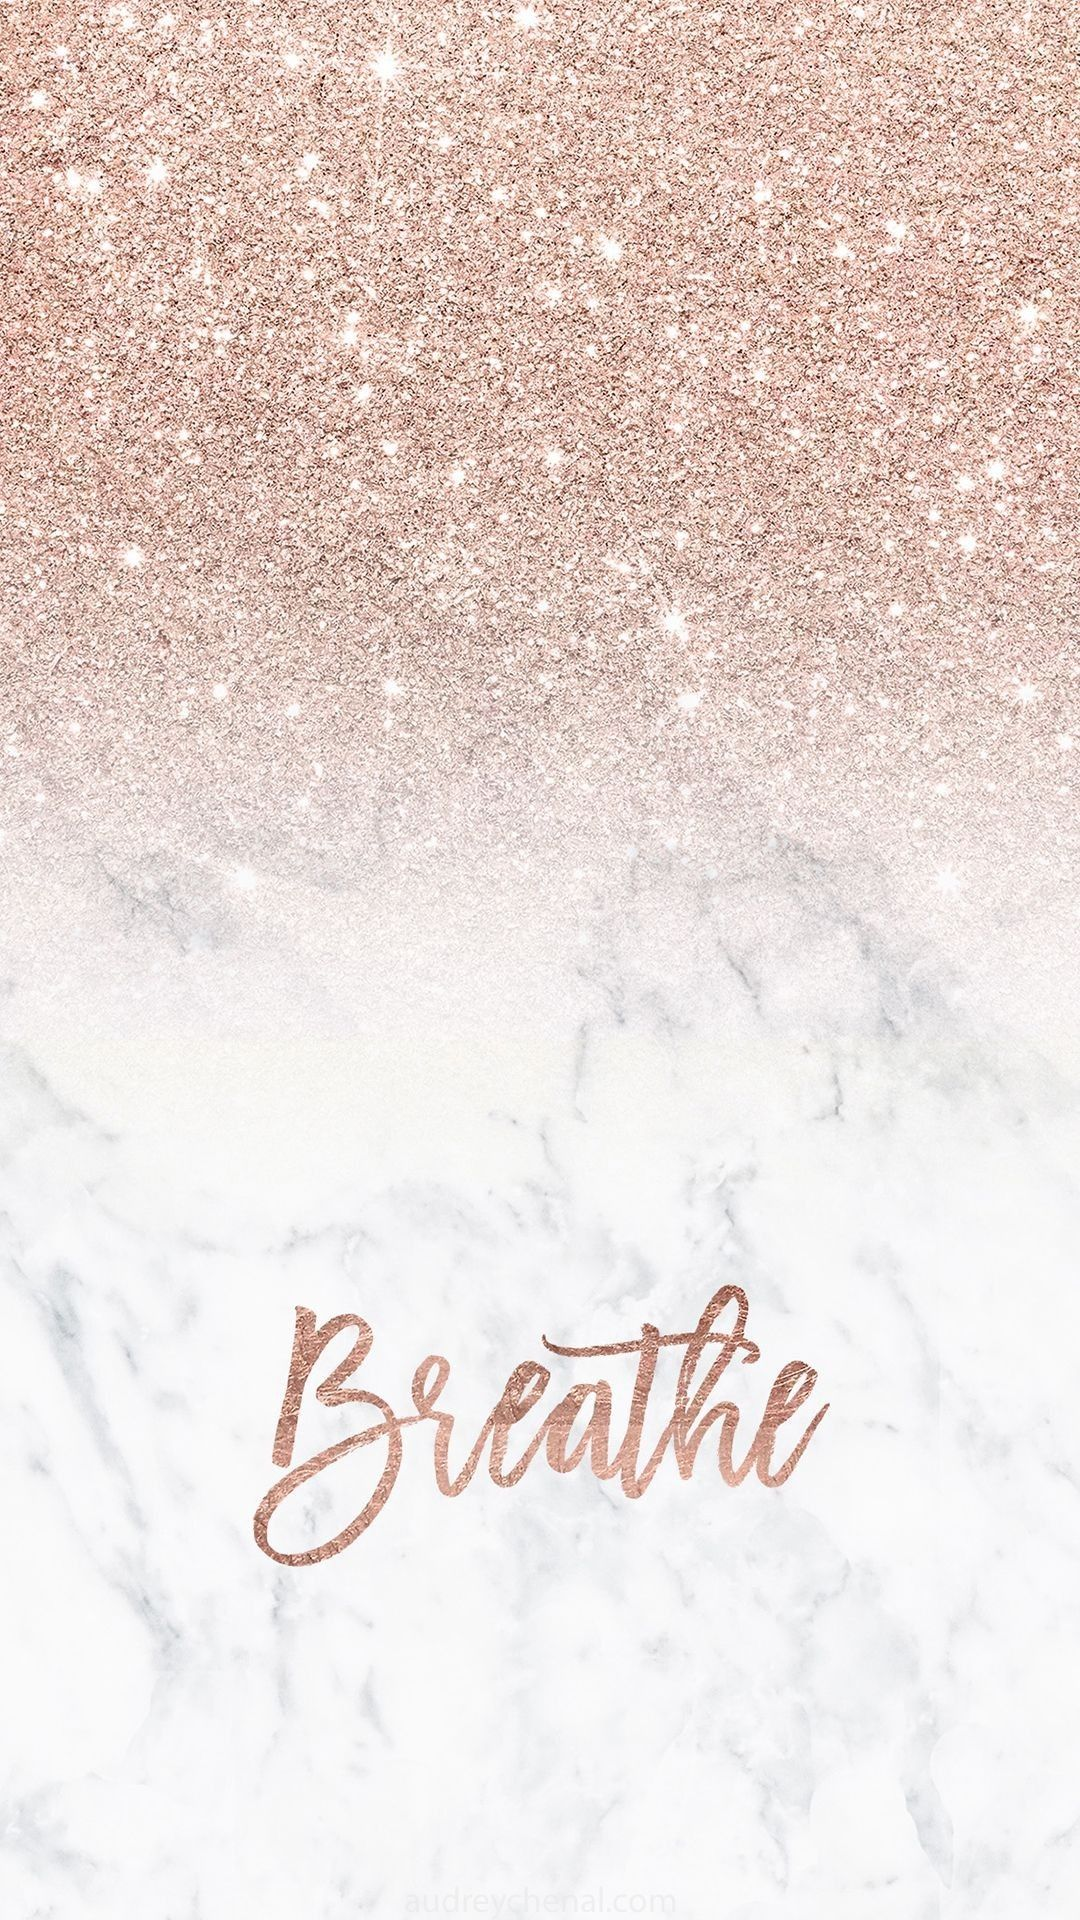 Pin By Leeanne On Backgrounds Rose Gold Wallpaper Iphone Gold